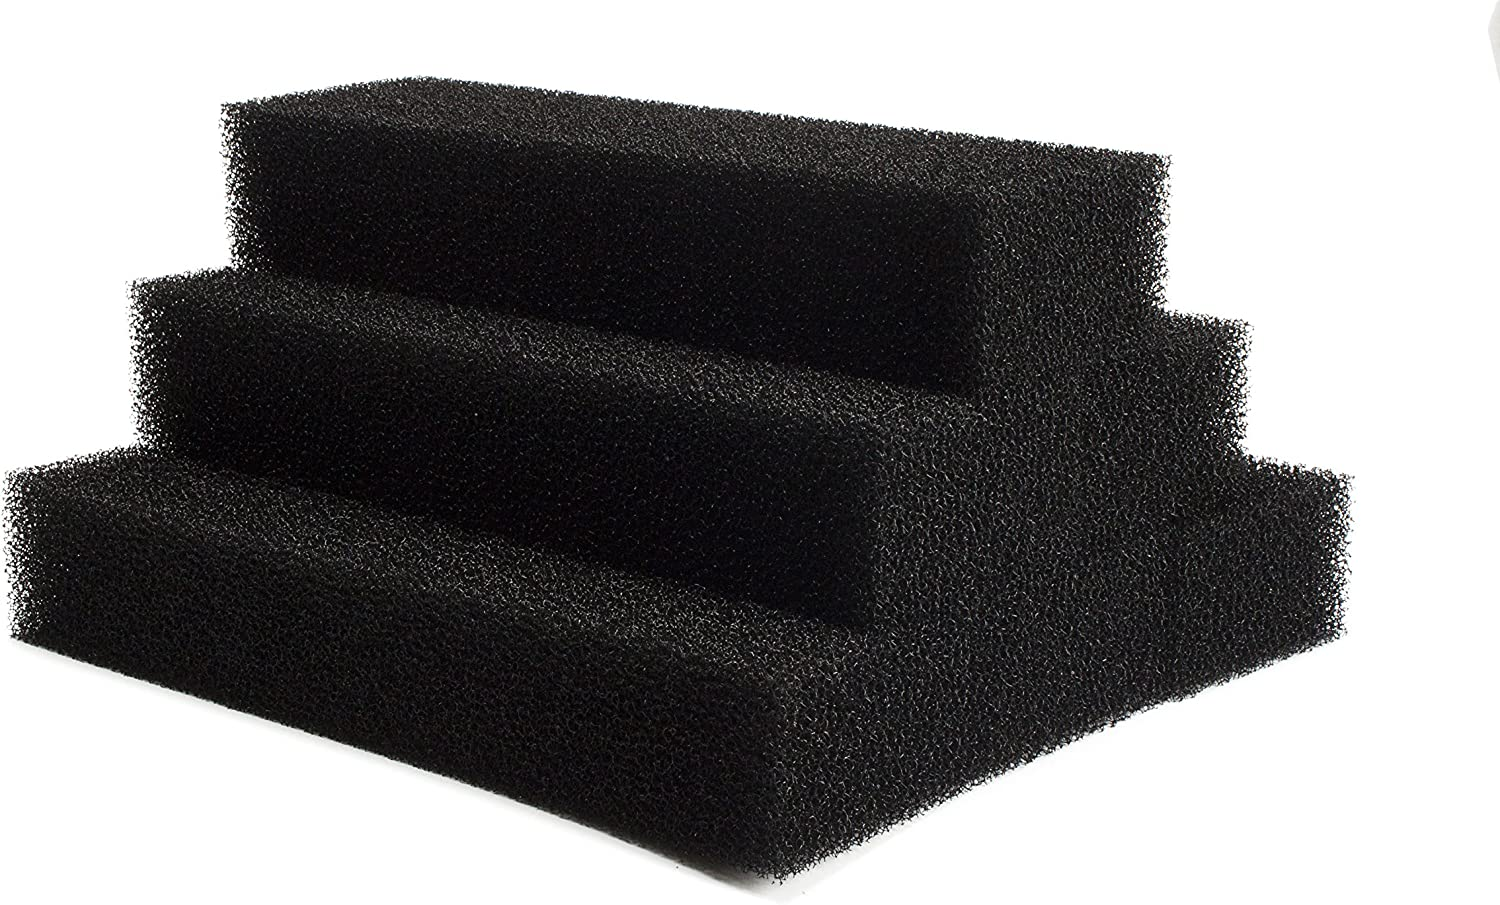 LTWHOME Large Square Foam Filter Compatible with Zoo Med's 501 External Filter (Pack of 6)